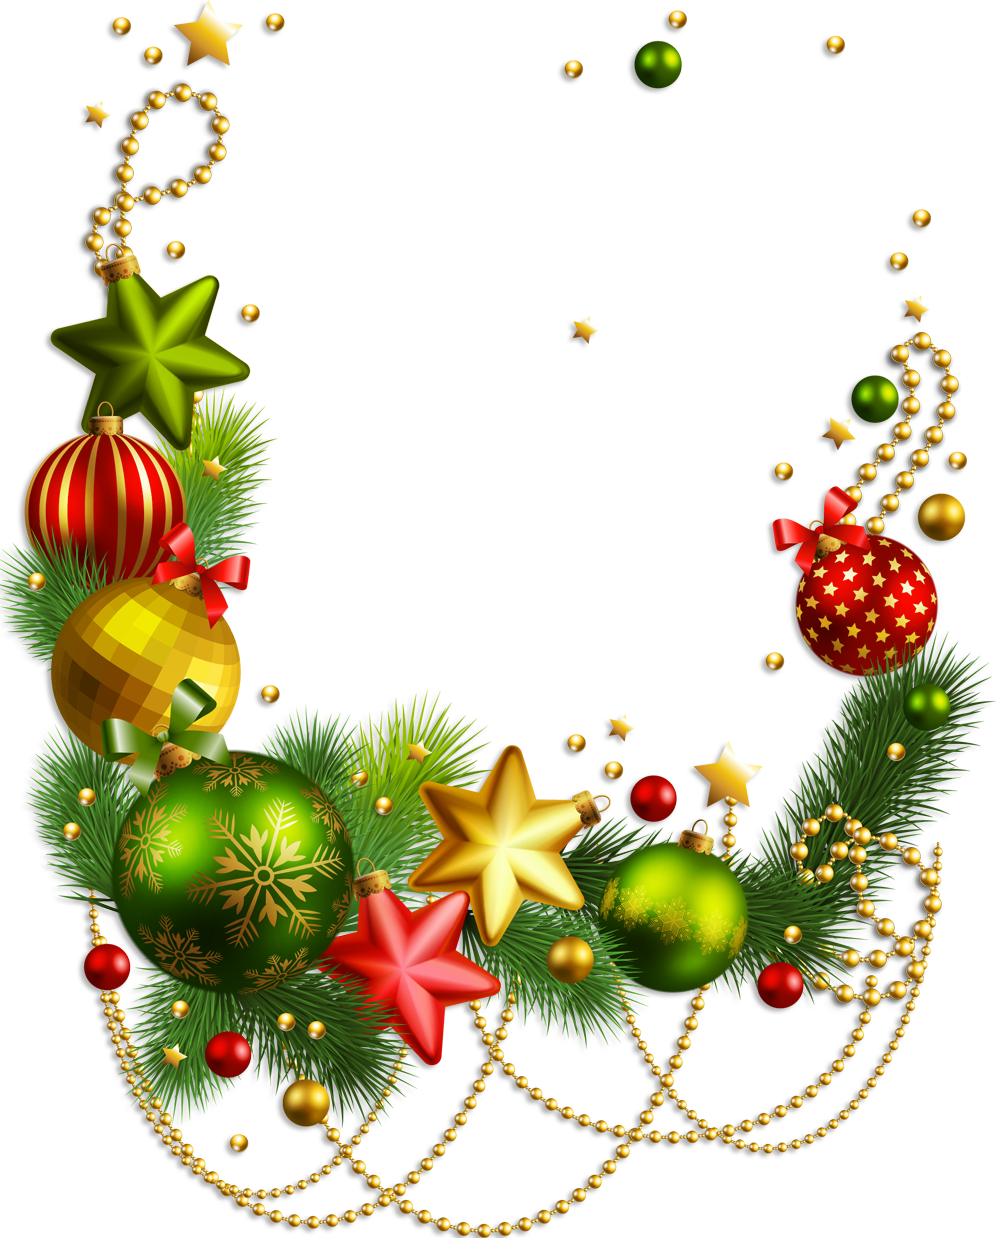 Ornaments at getdrawings com. Clipart family christmas